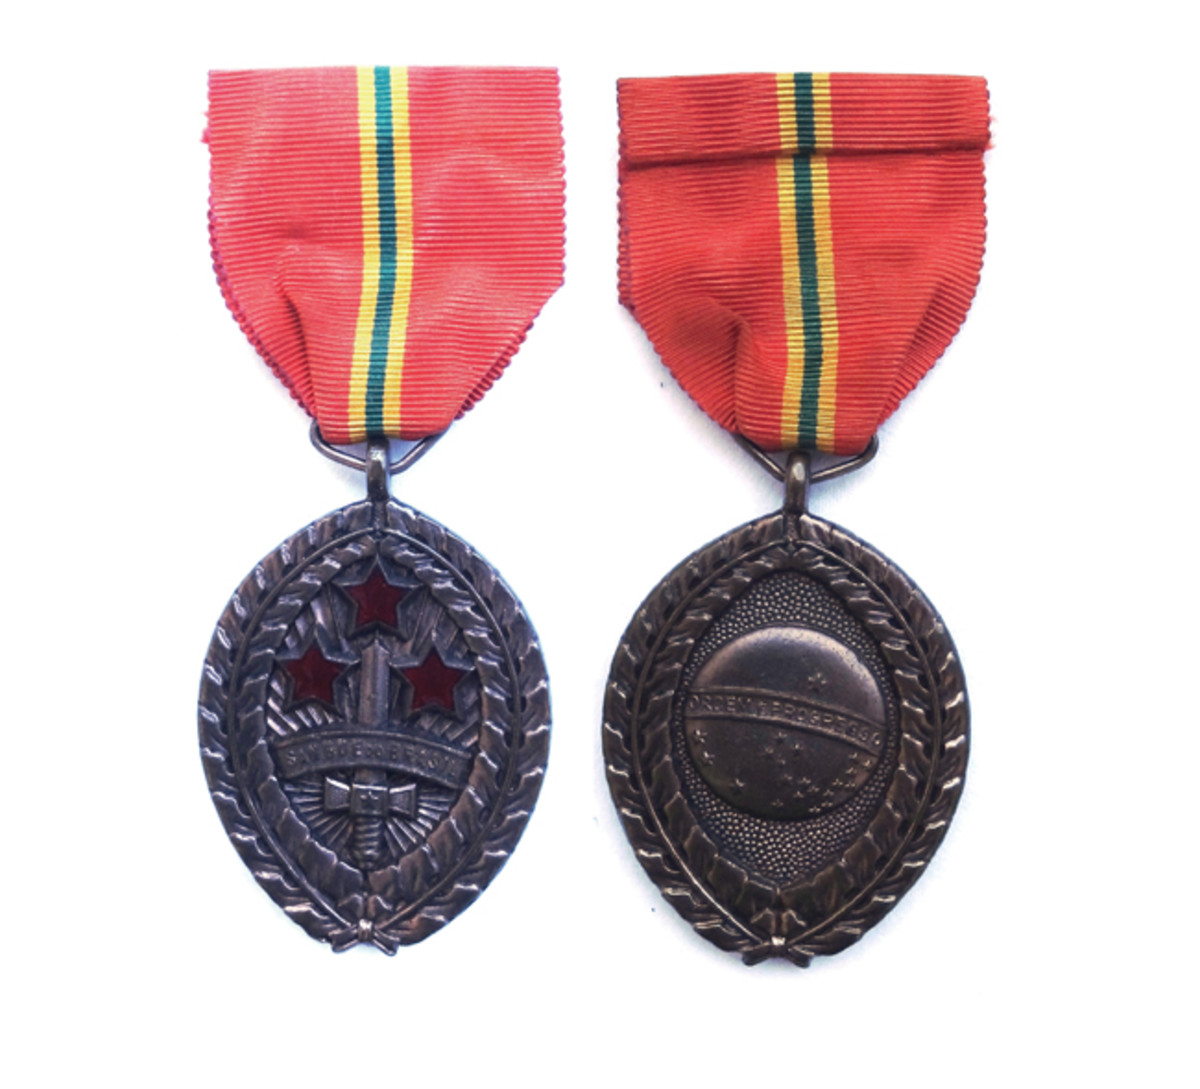 Blood of Brazil Medal features Brazilwood branches along the edge, symbolizing the tree for which the nation of Brazil was named. The three red enameled stars symbolize the mortal wounds suffered by Gen. Antônio de Sampaio during the Triple Alliance War.